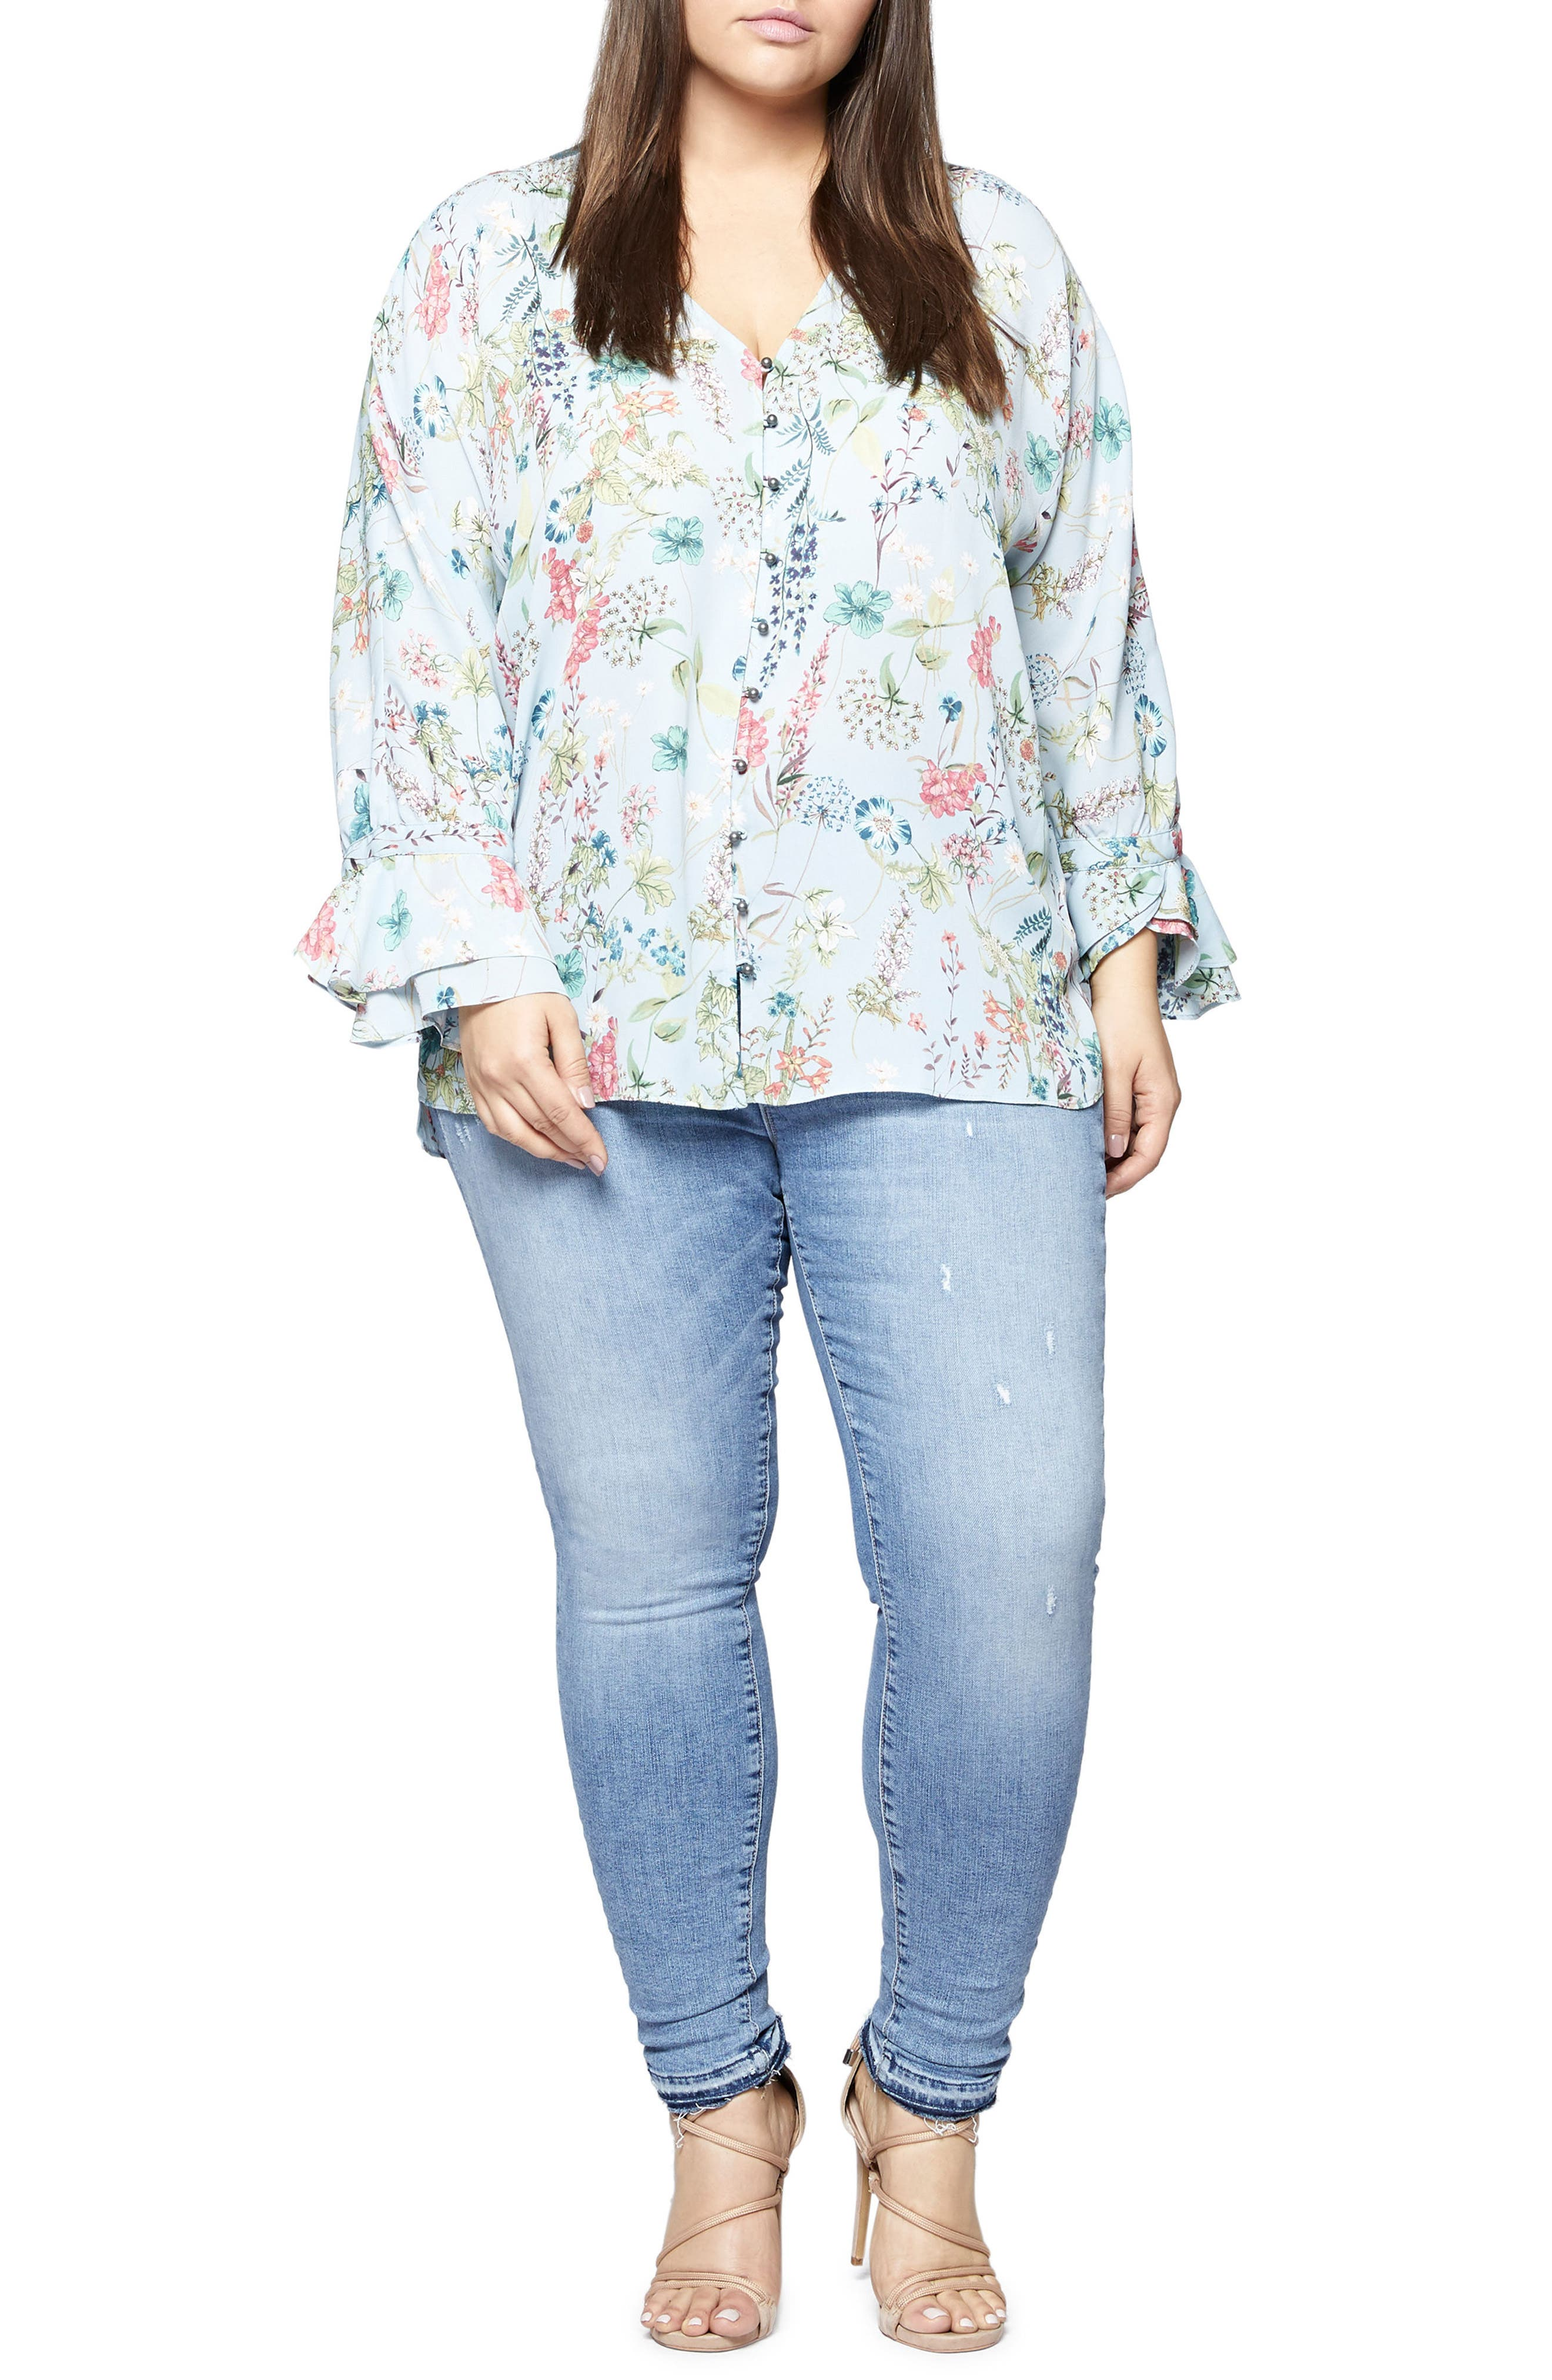 Posey Floral Blouse,                             Alternate thumbnail 3, color,                             450